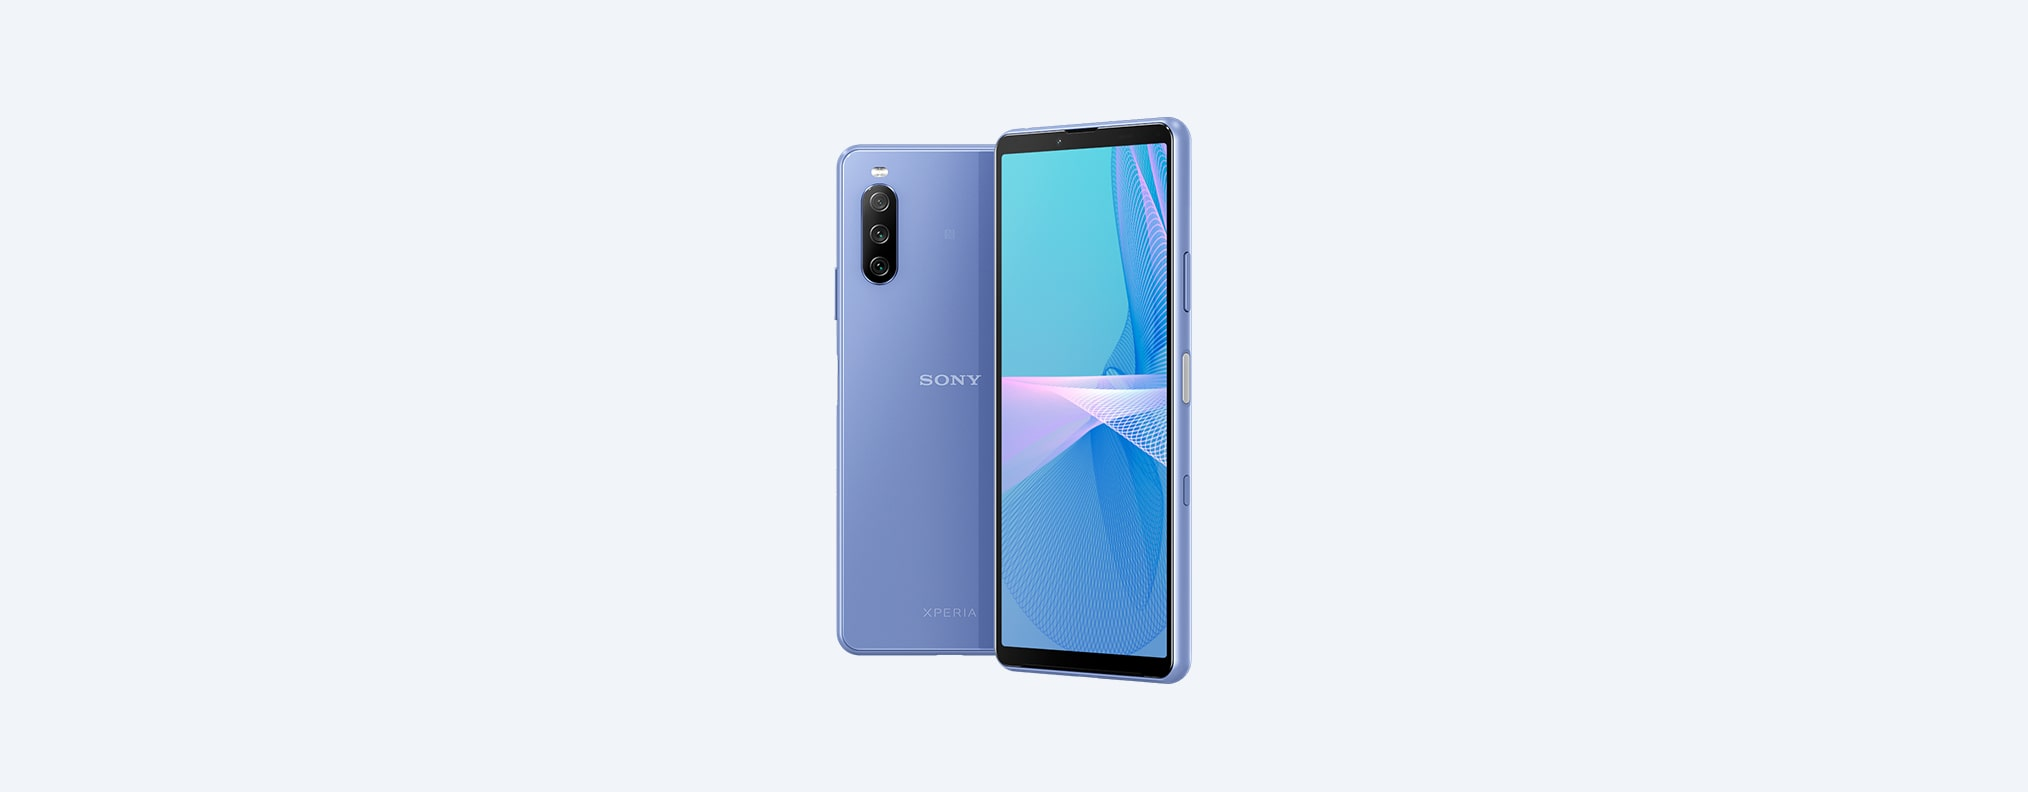 Xperia 10 III 5G Enabled Phone Launched